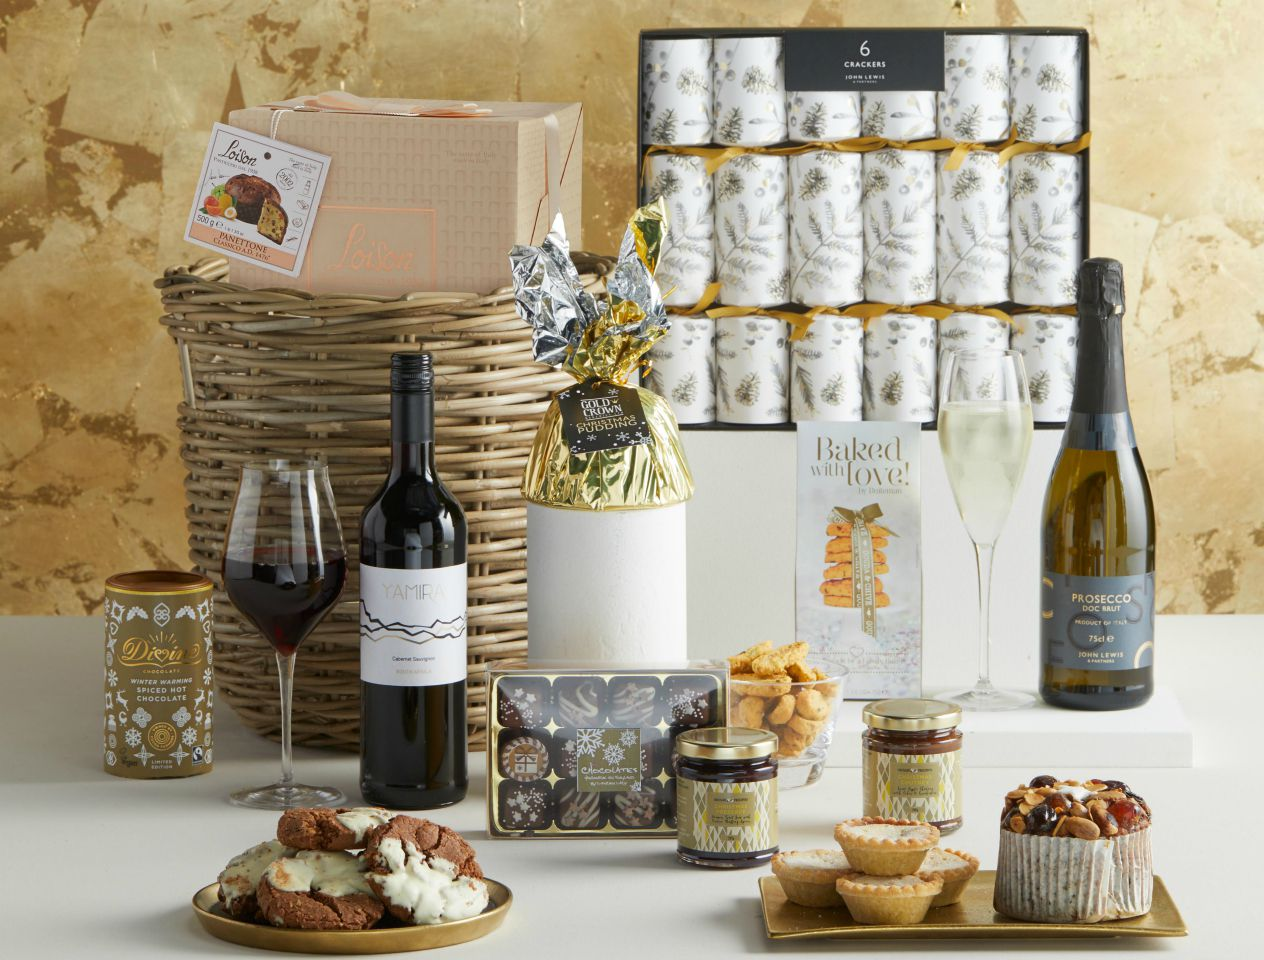 Stylish John Lewis & Partners Christmas hamper